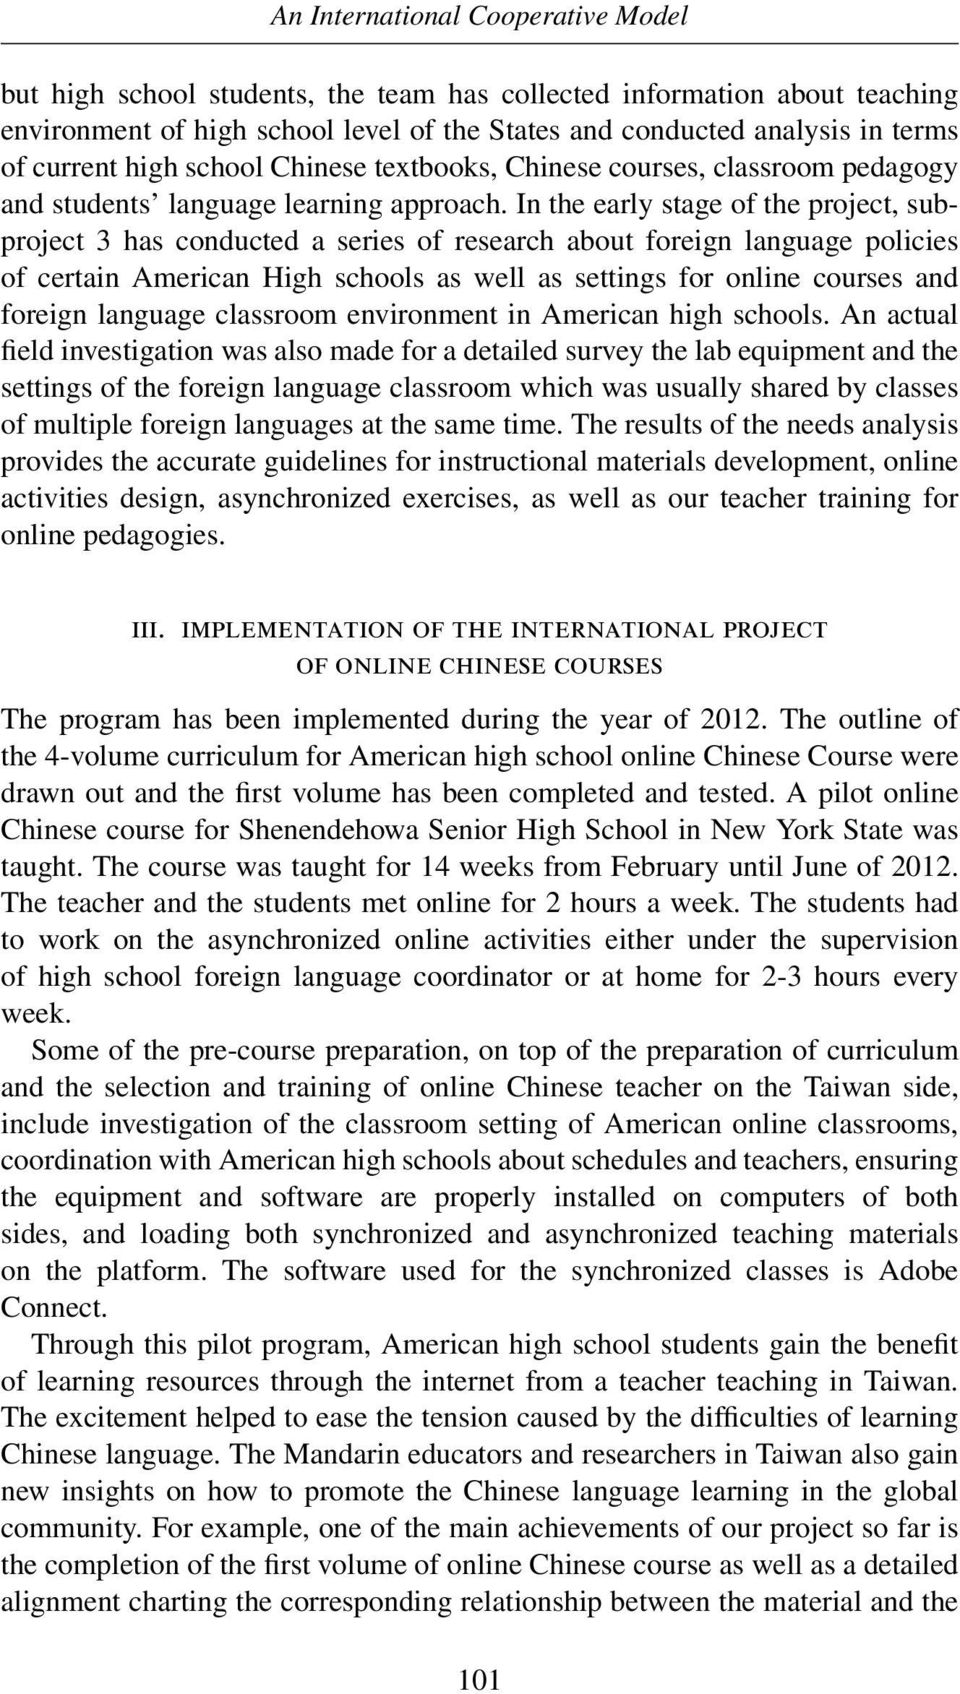 In the early stage of the project, subproject 3 has conducted a series of research about foreign language policies of certain American High schools as well as settings for online courses and foreign